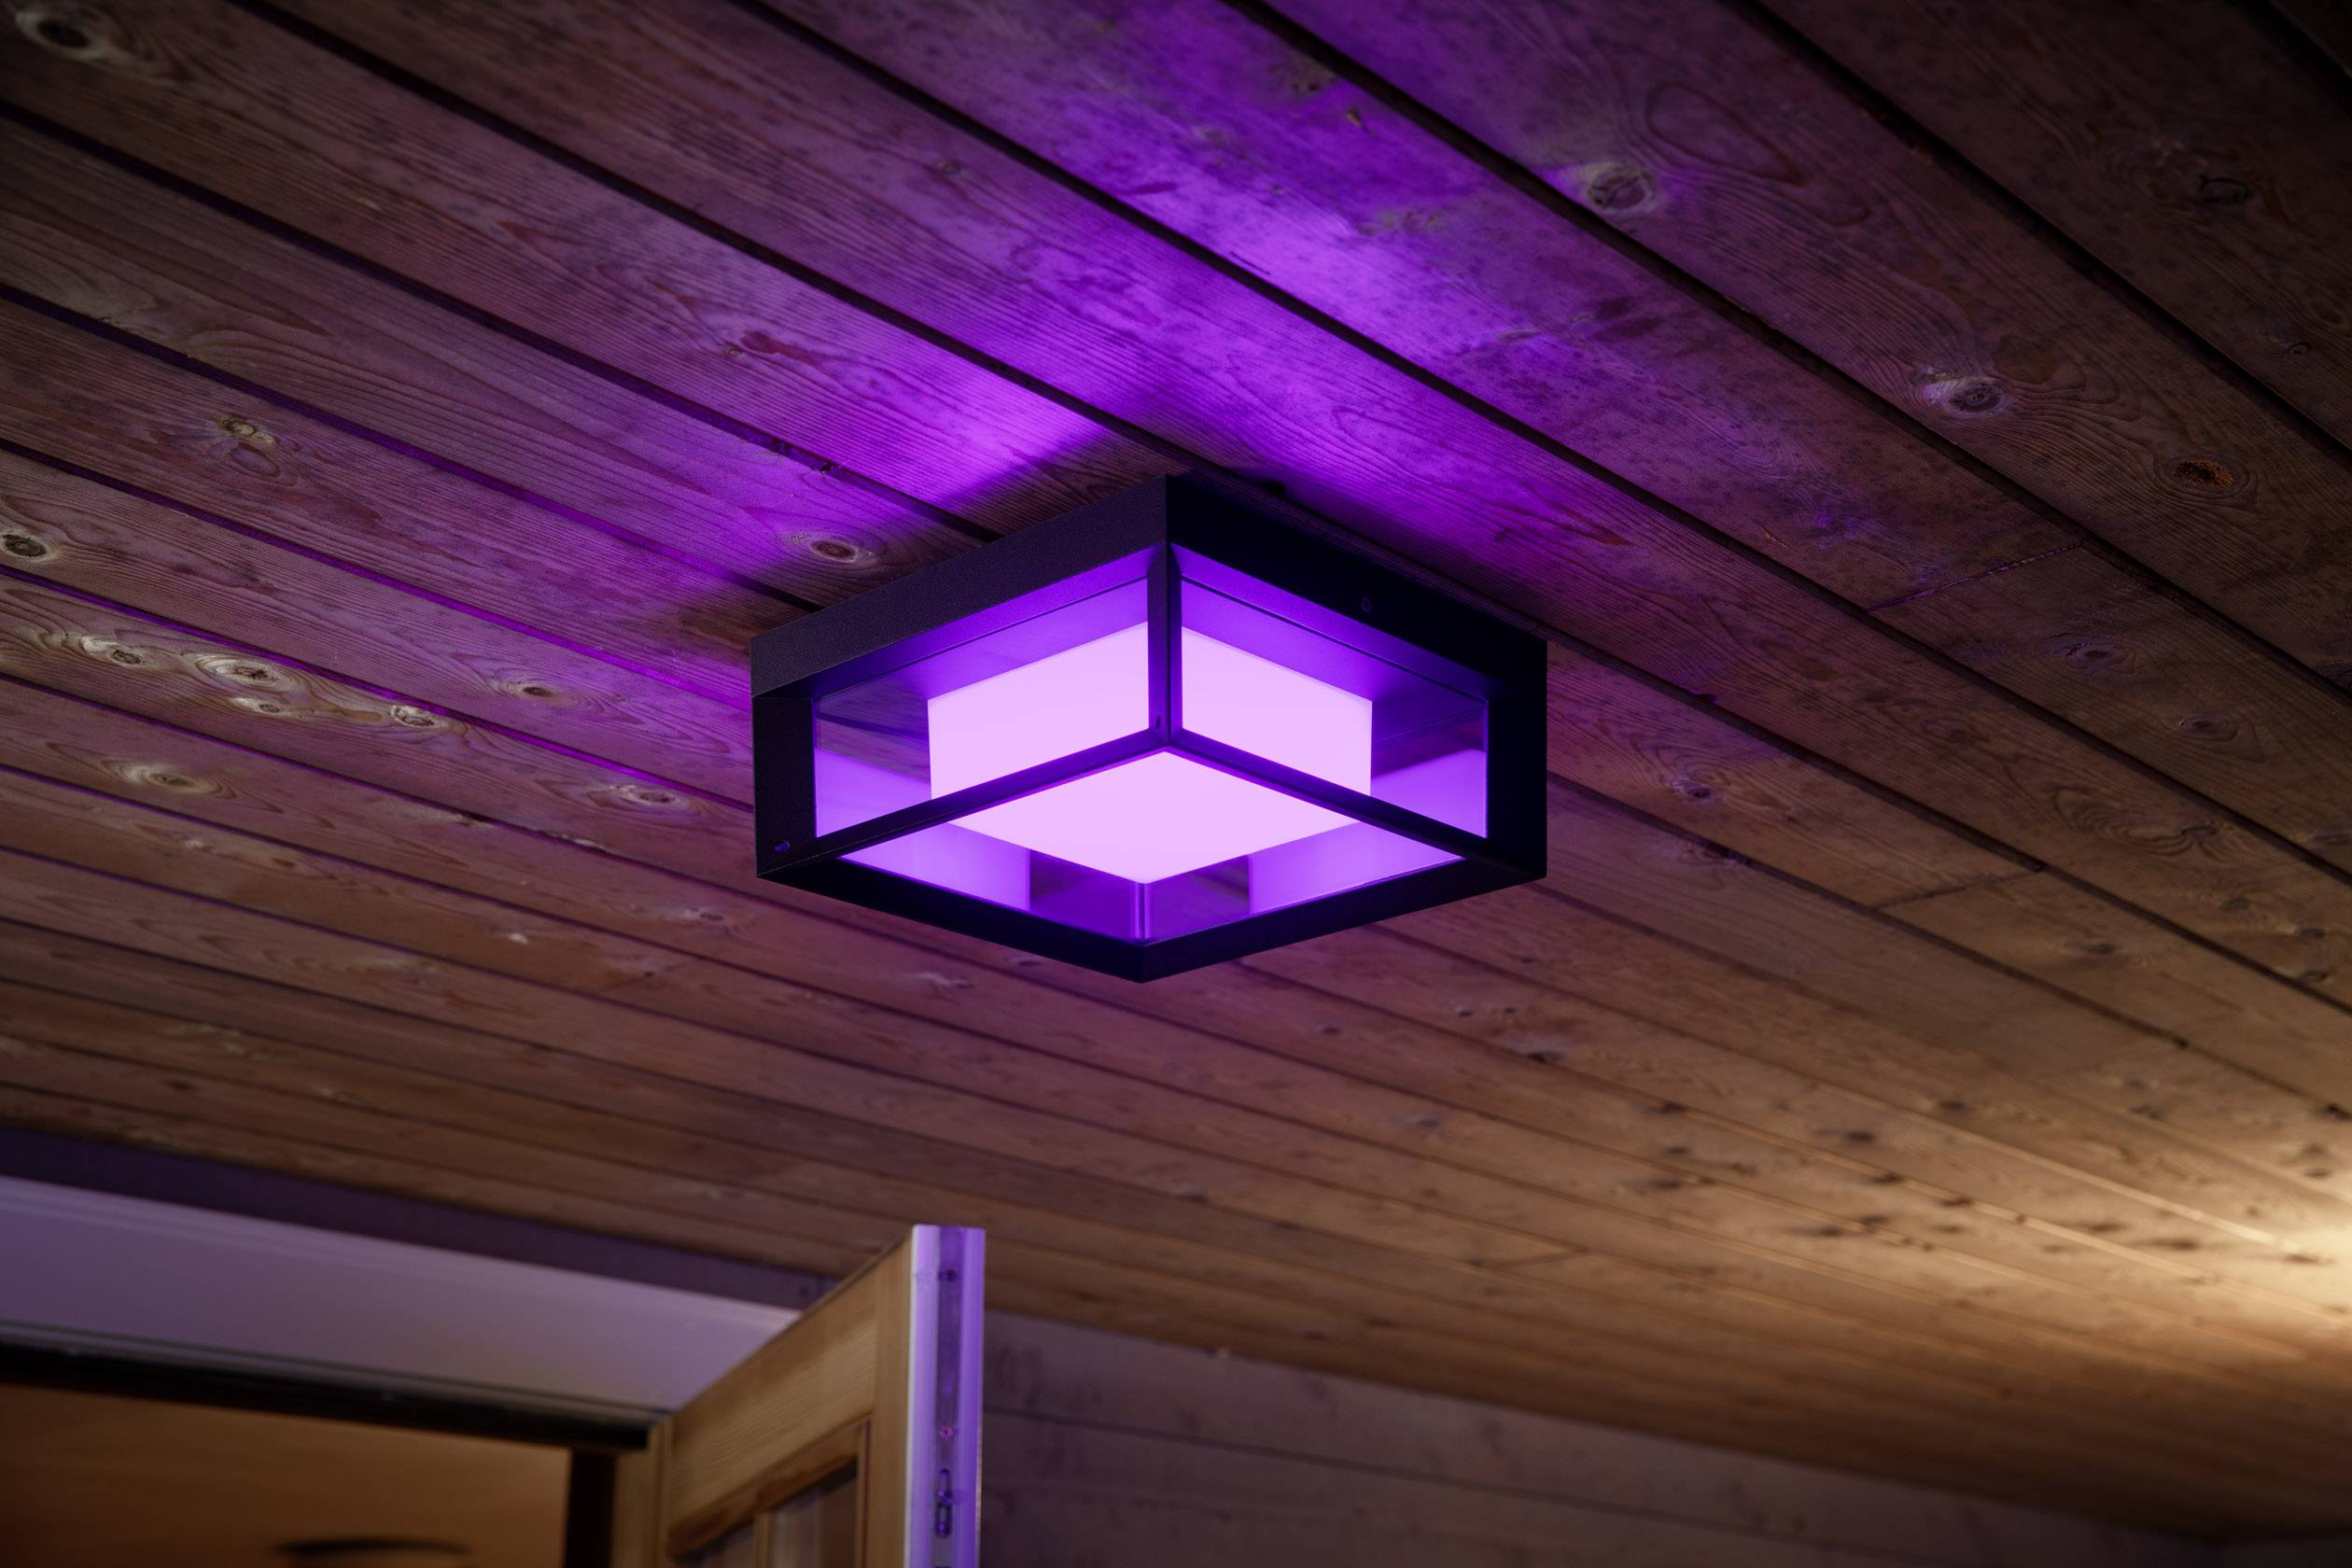 Stroomverbruik Hue Lampen : Philips lighting hue led wandlamp voor buiten econic led vast